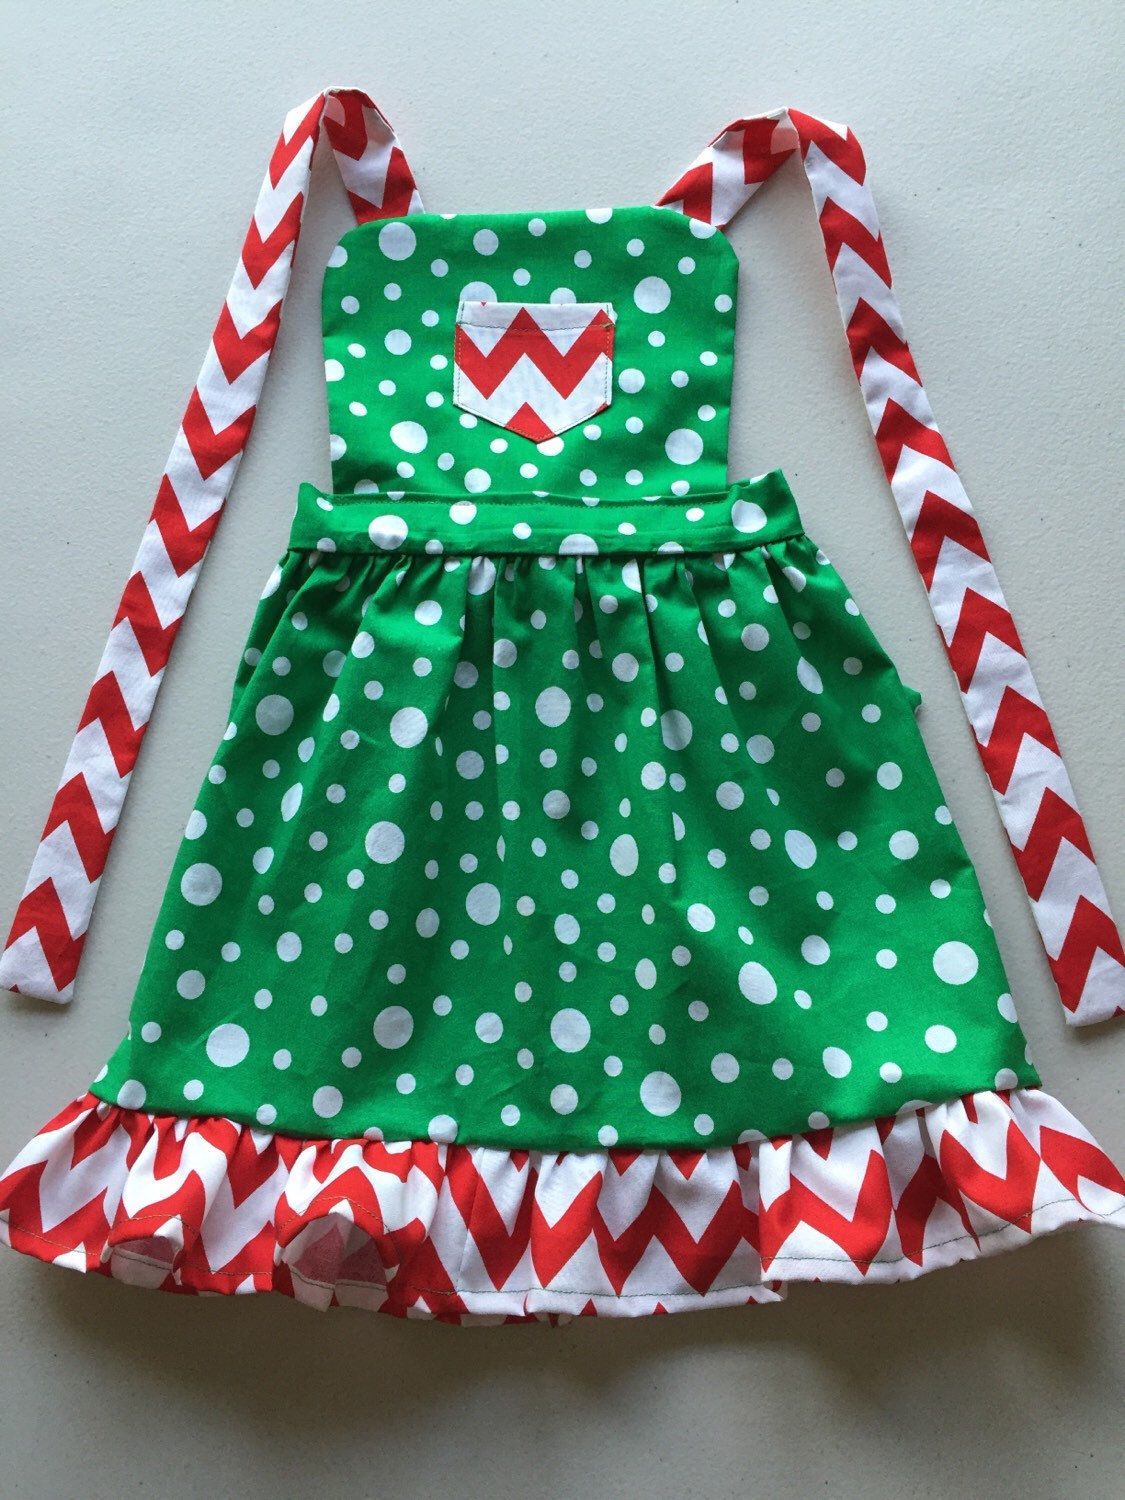 Pin By Dima Daisy Boutique On Kids Aprons Pinterest Christmas Aprons Kids Apron And Christmas